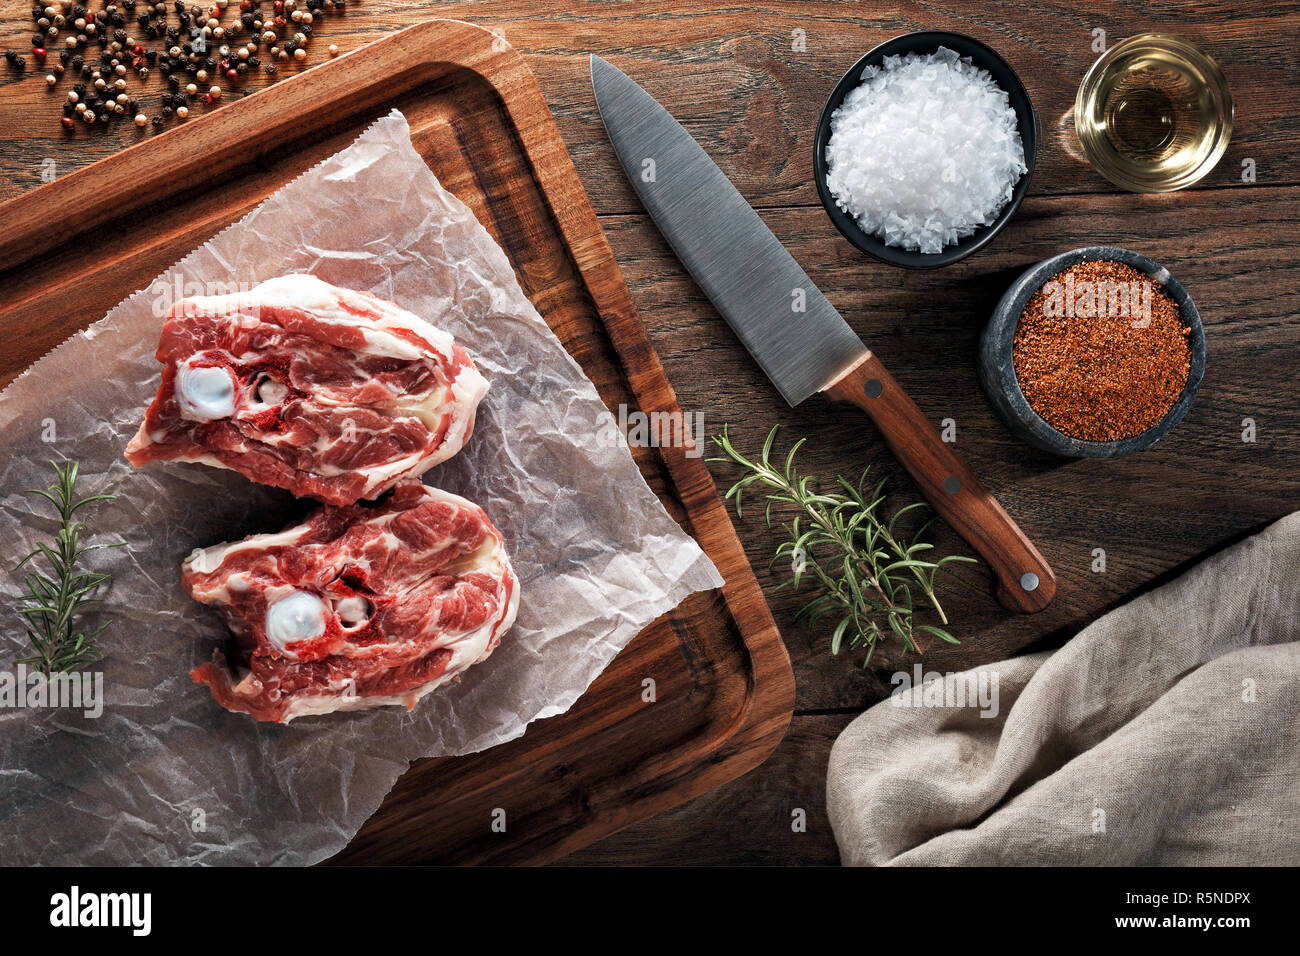 Raw lamb neck meat on white cooking paper and wooden cutting board. Decorated with herbs, spices, chef's knife and napkin. Overhead view. - Stock Image